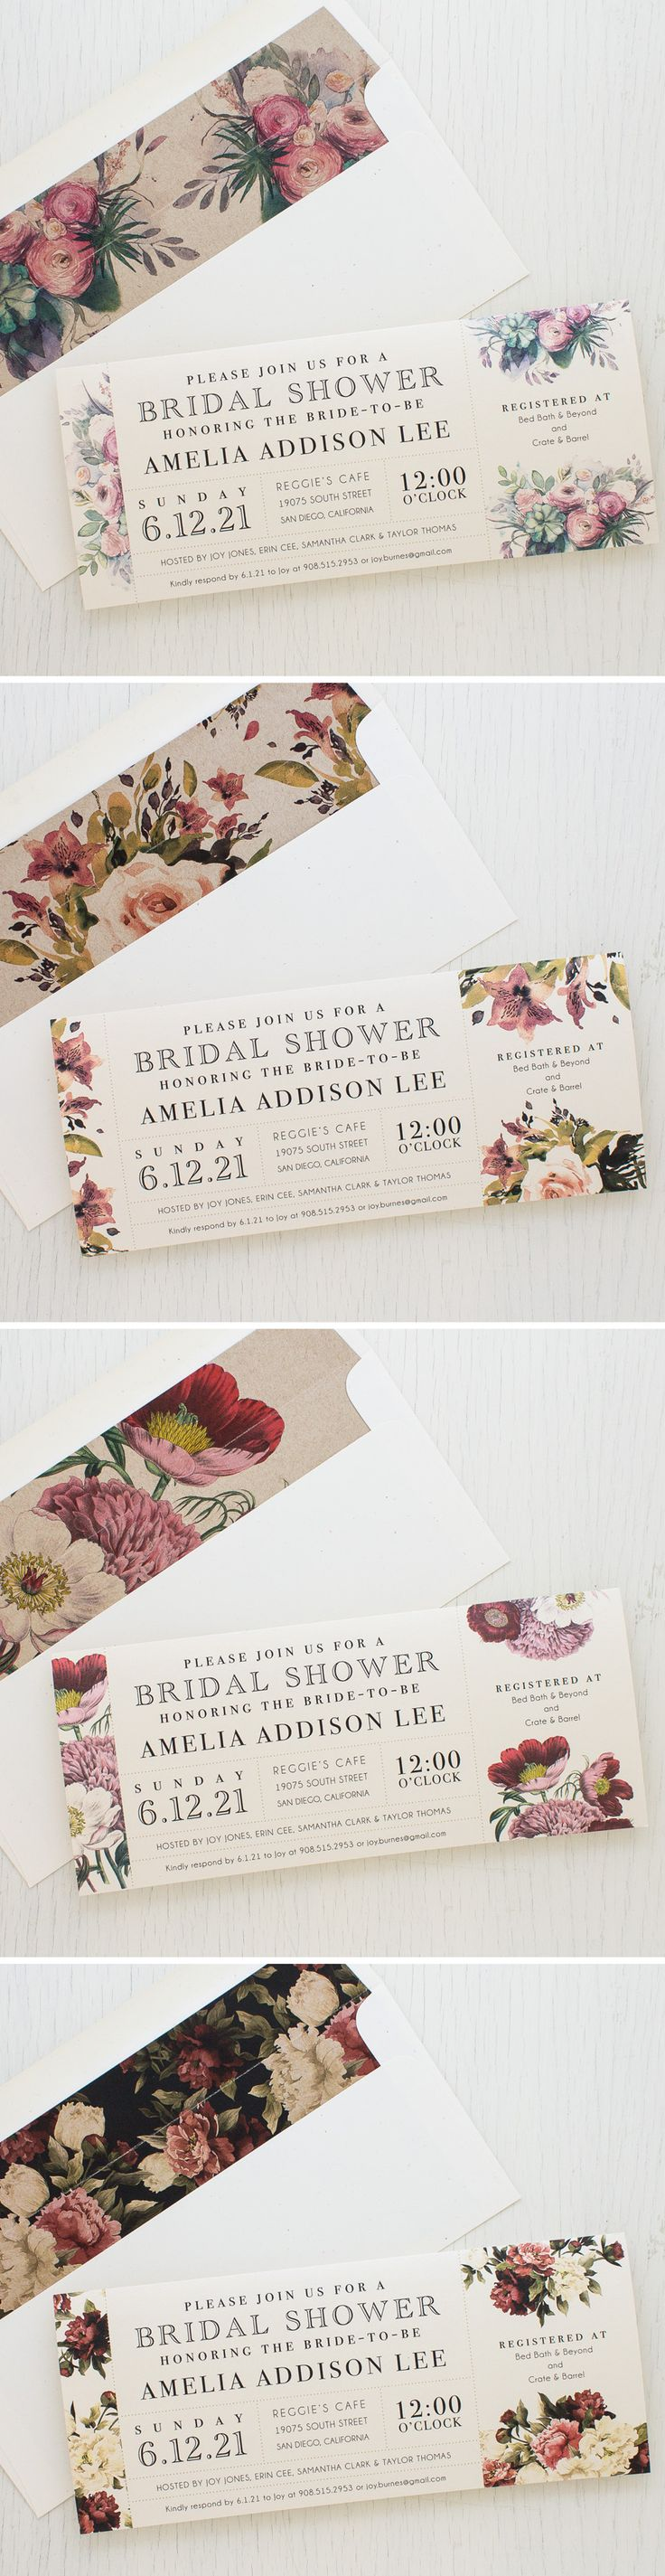 Soft & Romantic Watercolor Garden Rose inspired Bridal Shower Invites with Matching Envelope Liners. New for 2017 Brides!